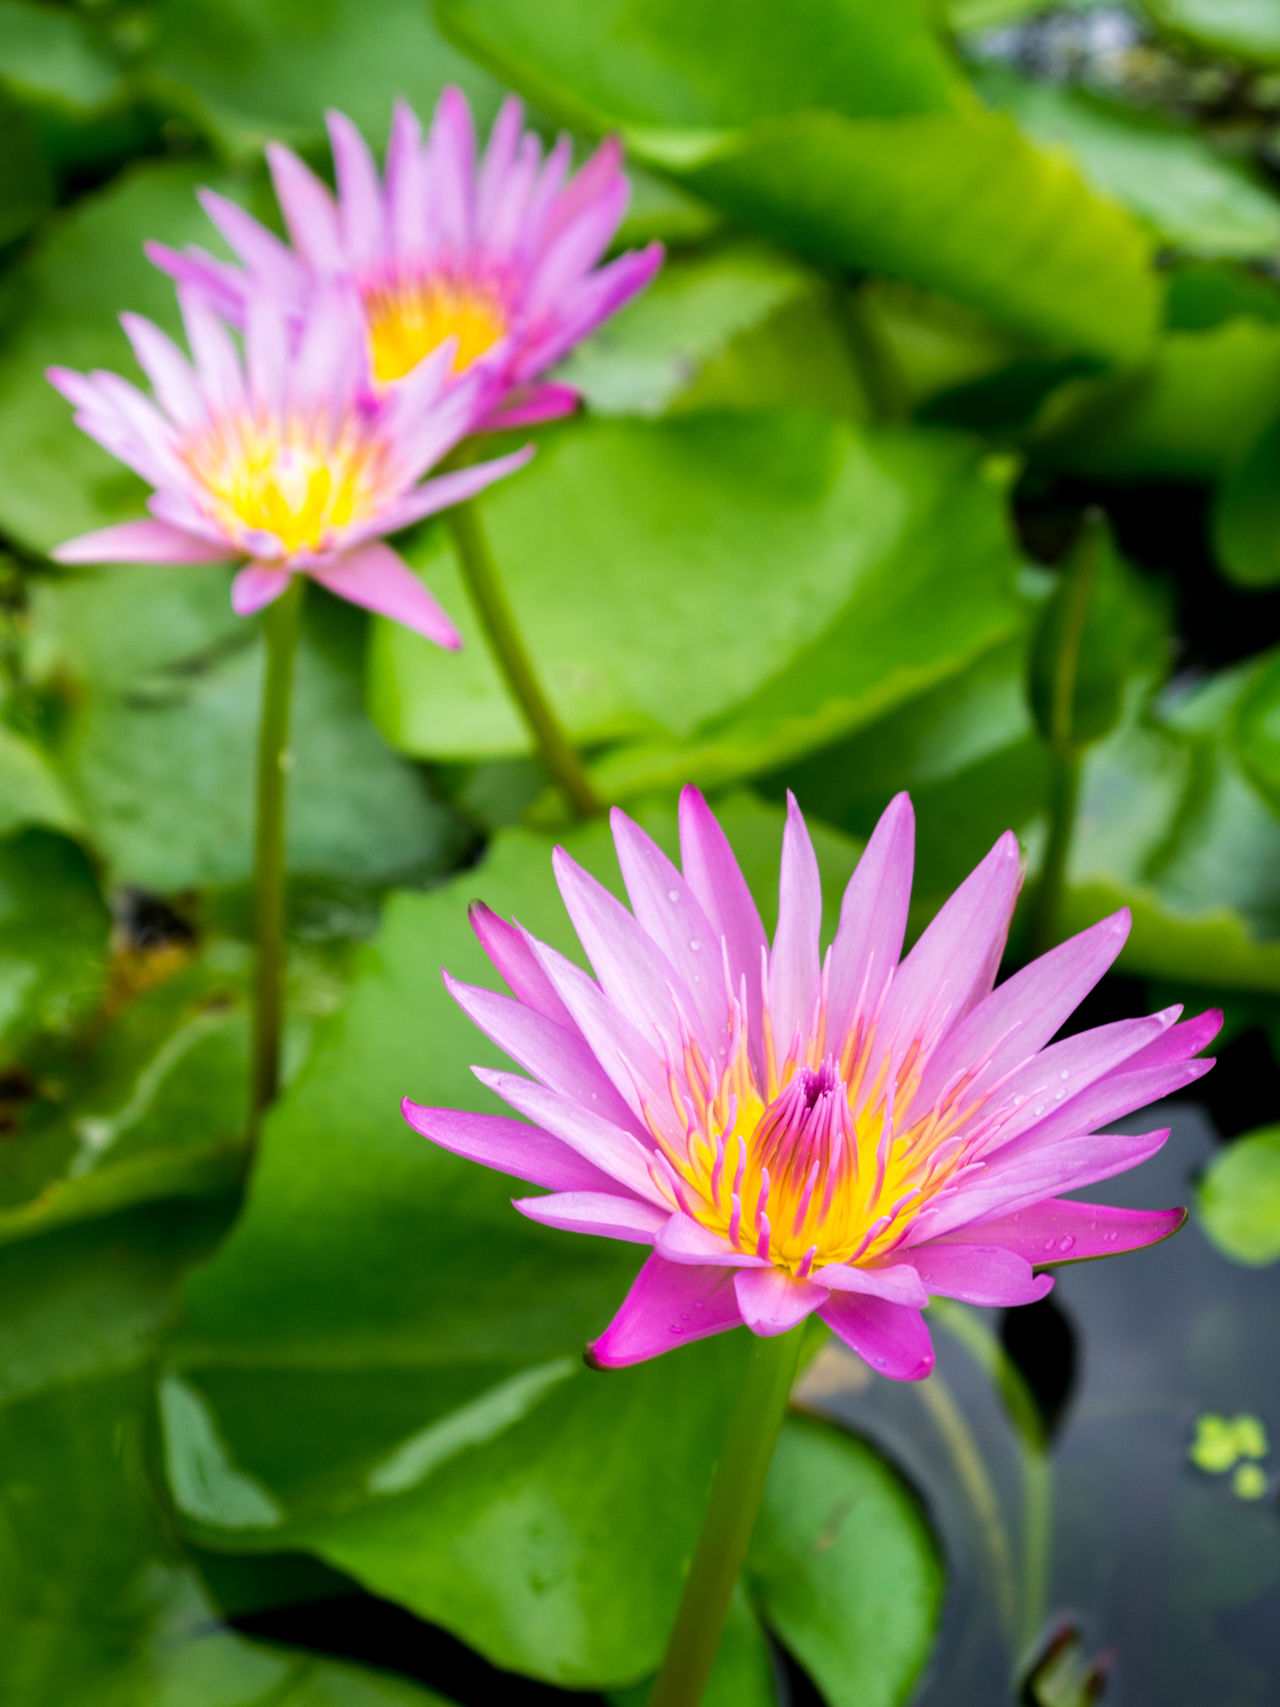 Blooming Purple Lotus in Pond Beauty In Nature Blooming Close-up Day Flower Flower Head Focus On Foreground Fragility Freshness Growth Leaf Lotus Lotus Water Lily Love Nature No People Outdoors Petal Pink Color Plant